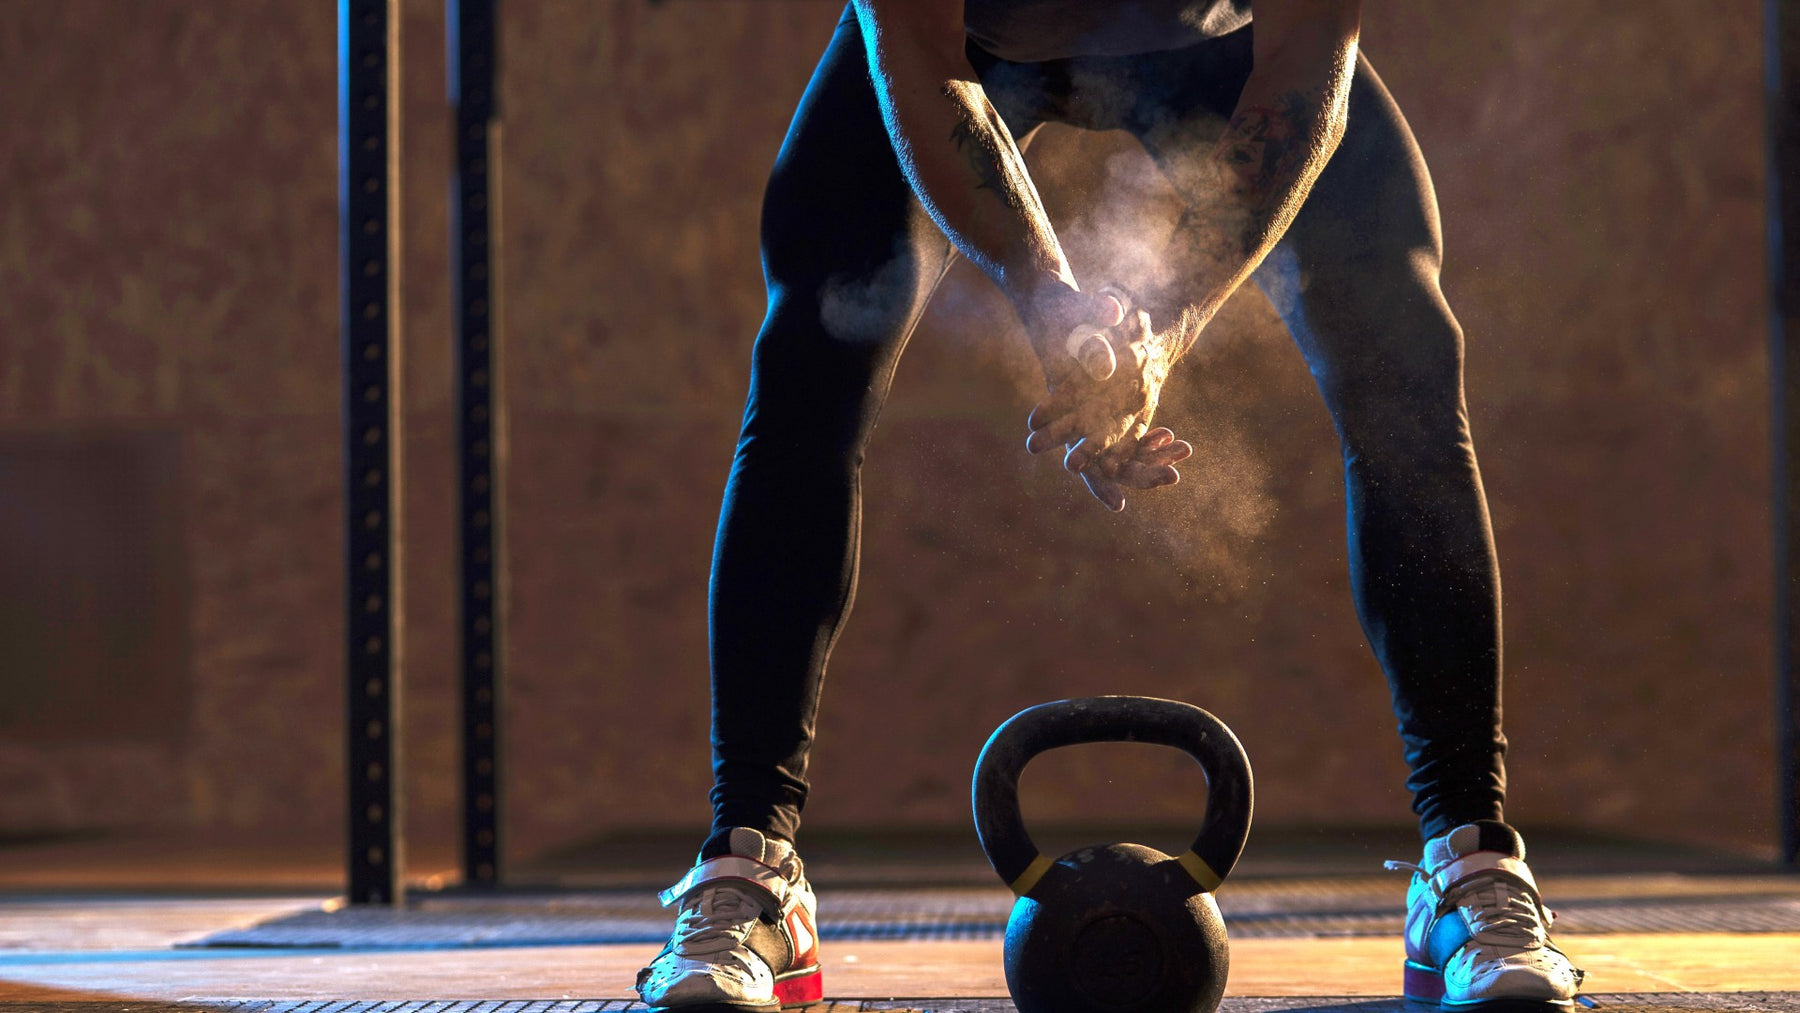 Kettlebell Swings - A Complete Guide and Workout